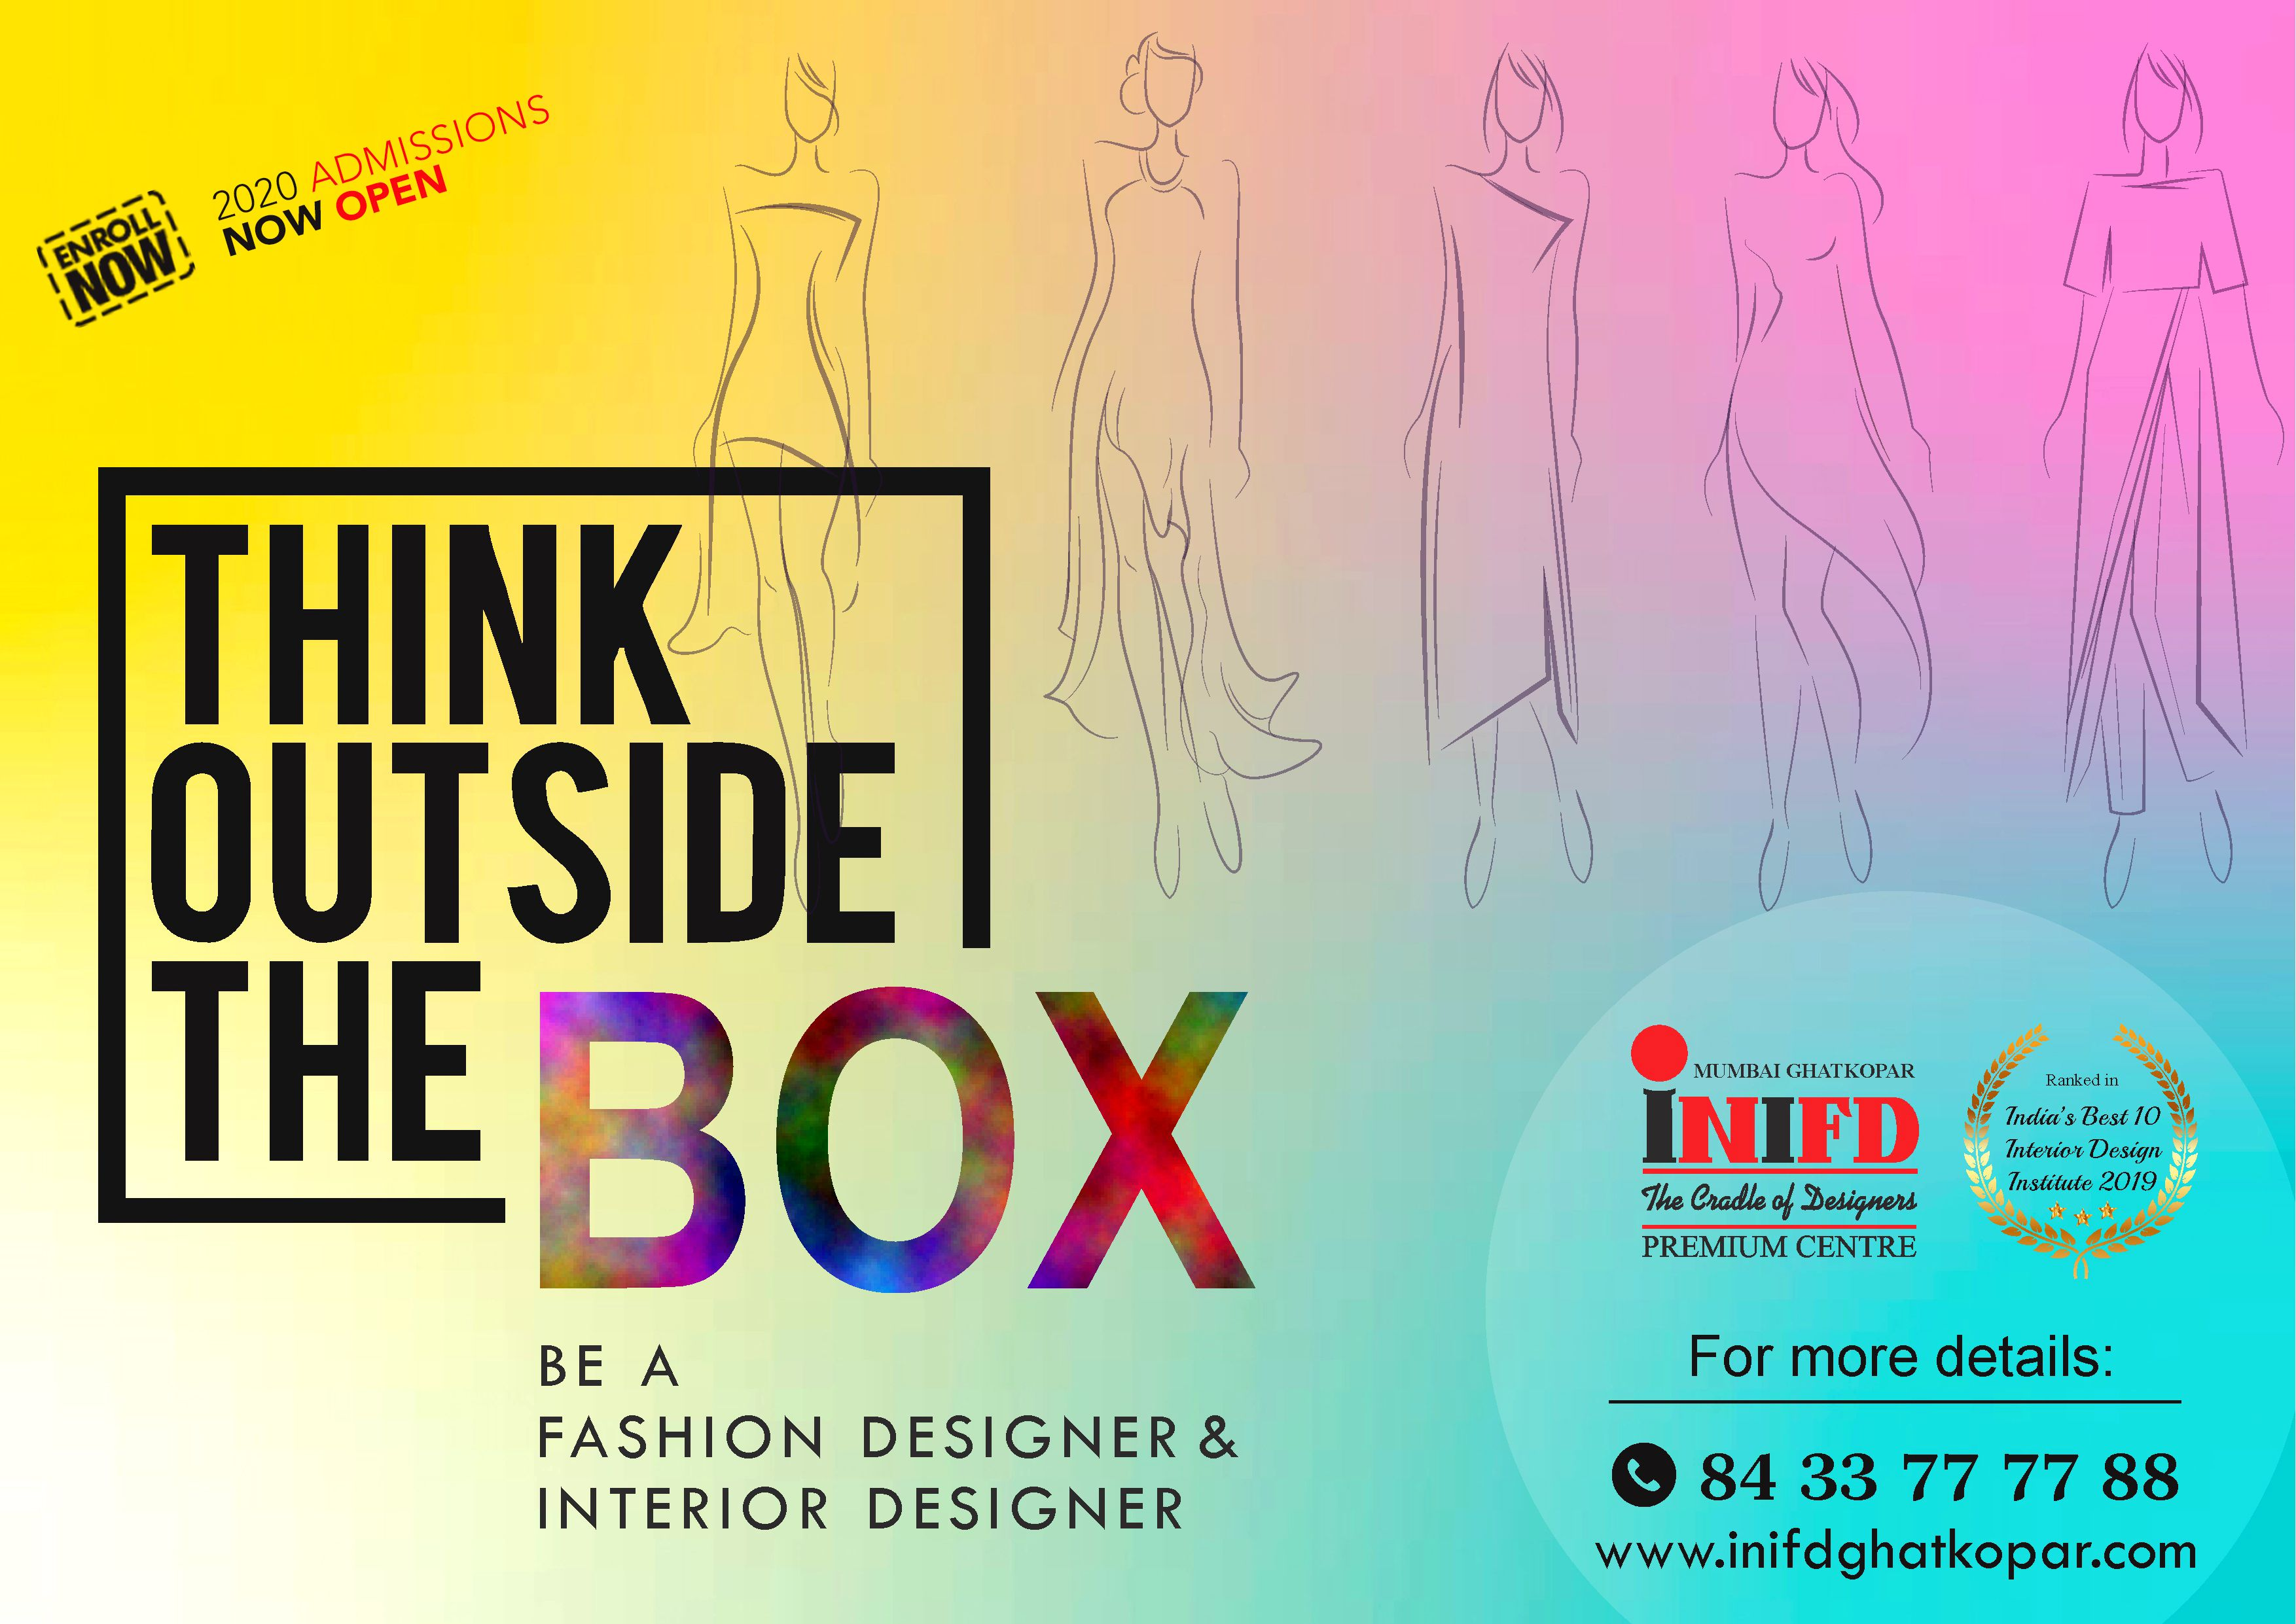 Think Out Of The Box Become A World Class Designer Admissions Open For 2020 Diploma Degree Masters Int In 2020 Interior Design Institute Admissions Fashion Design